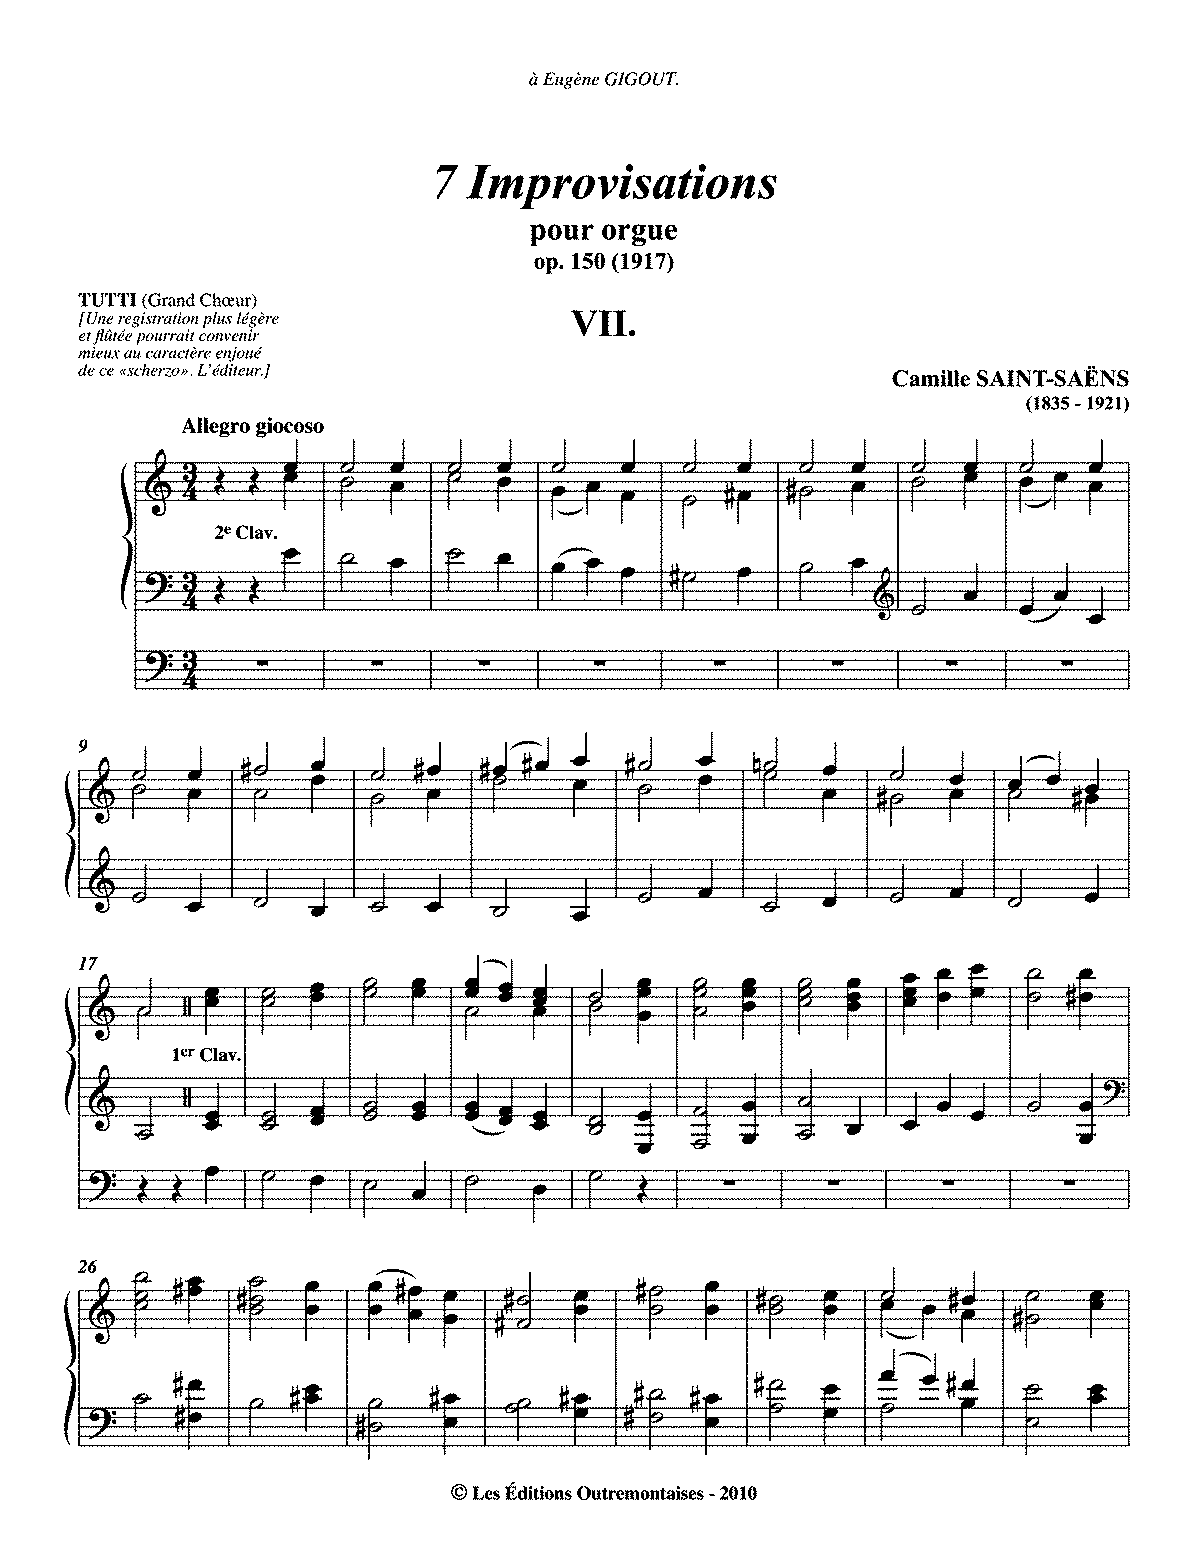 WIMA.fb82-Saint-Saens Improvisations Op150 7.pdf